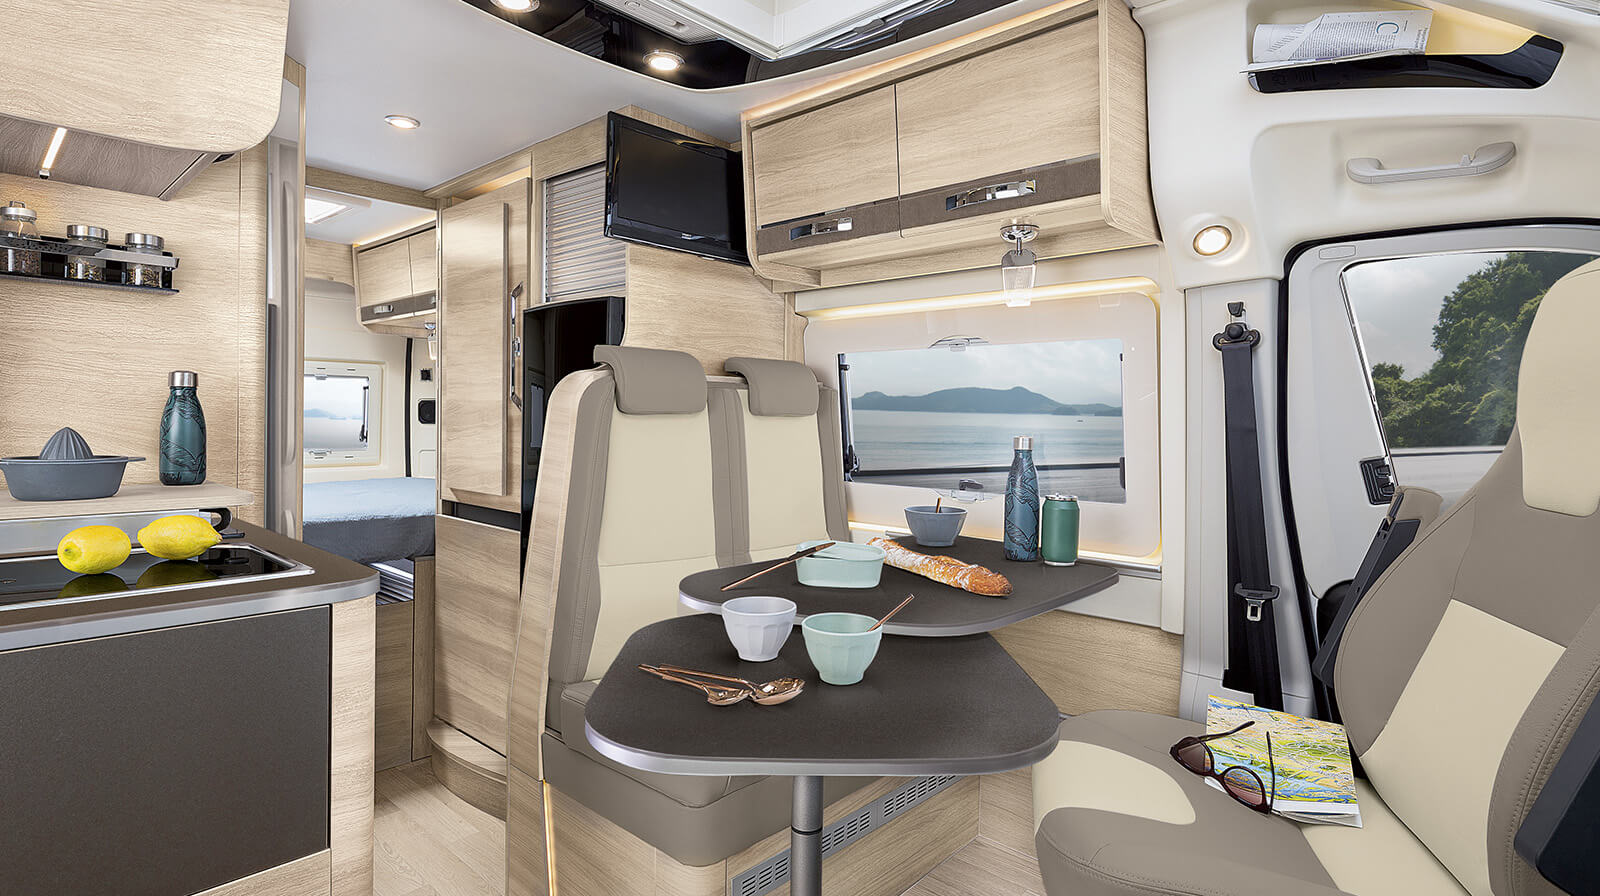 Interior photos RAPIDO Motorhome V55